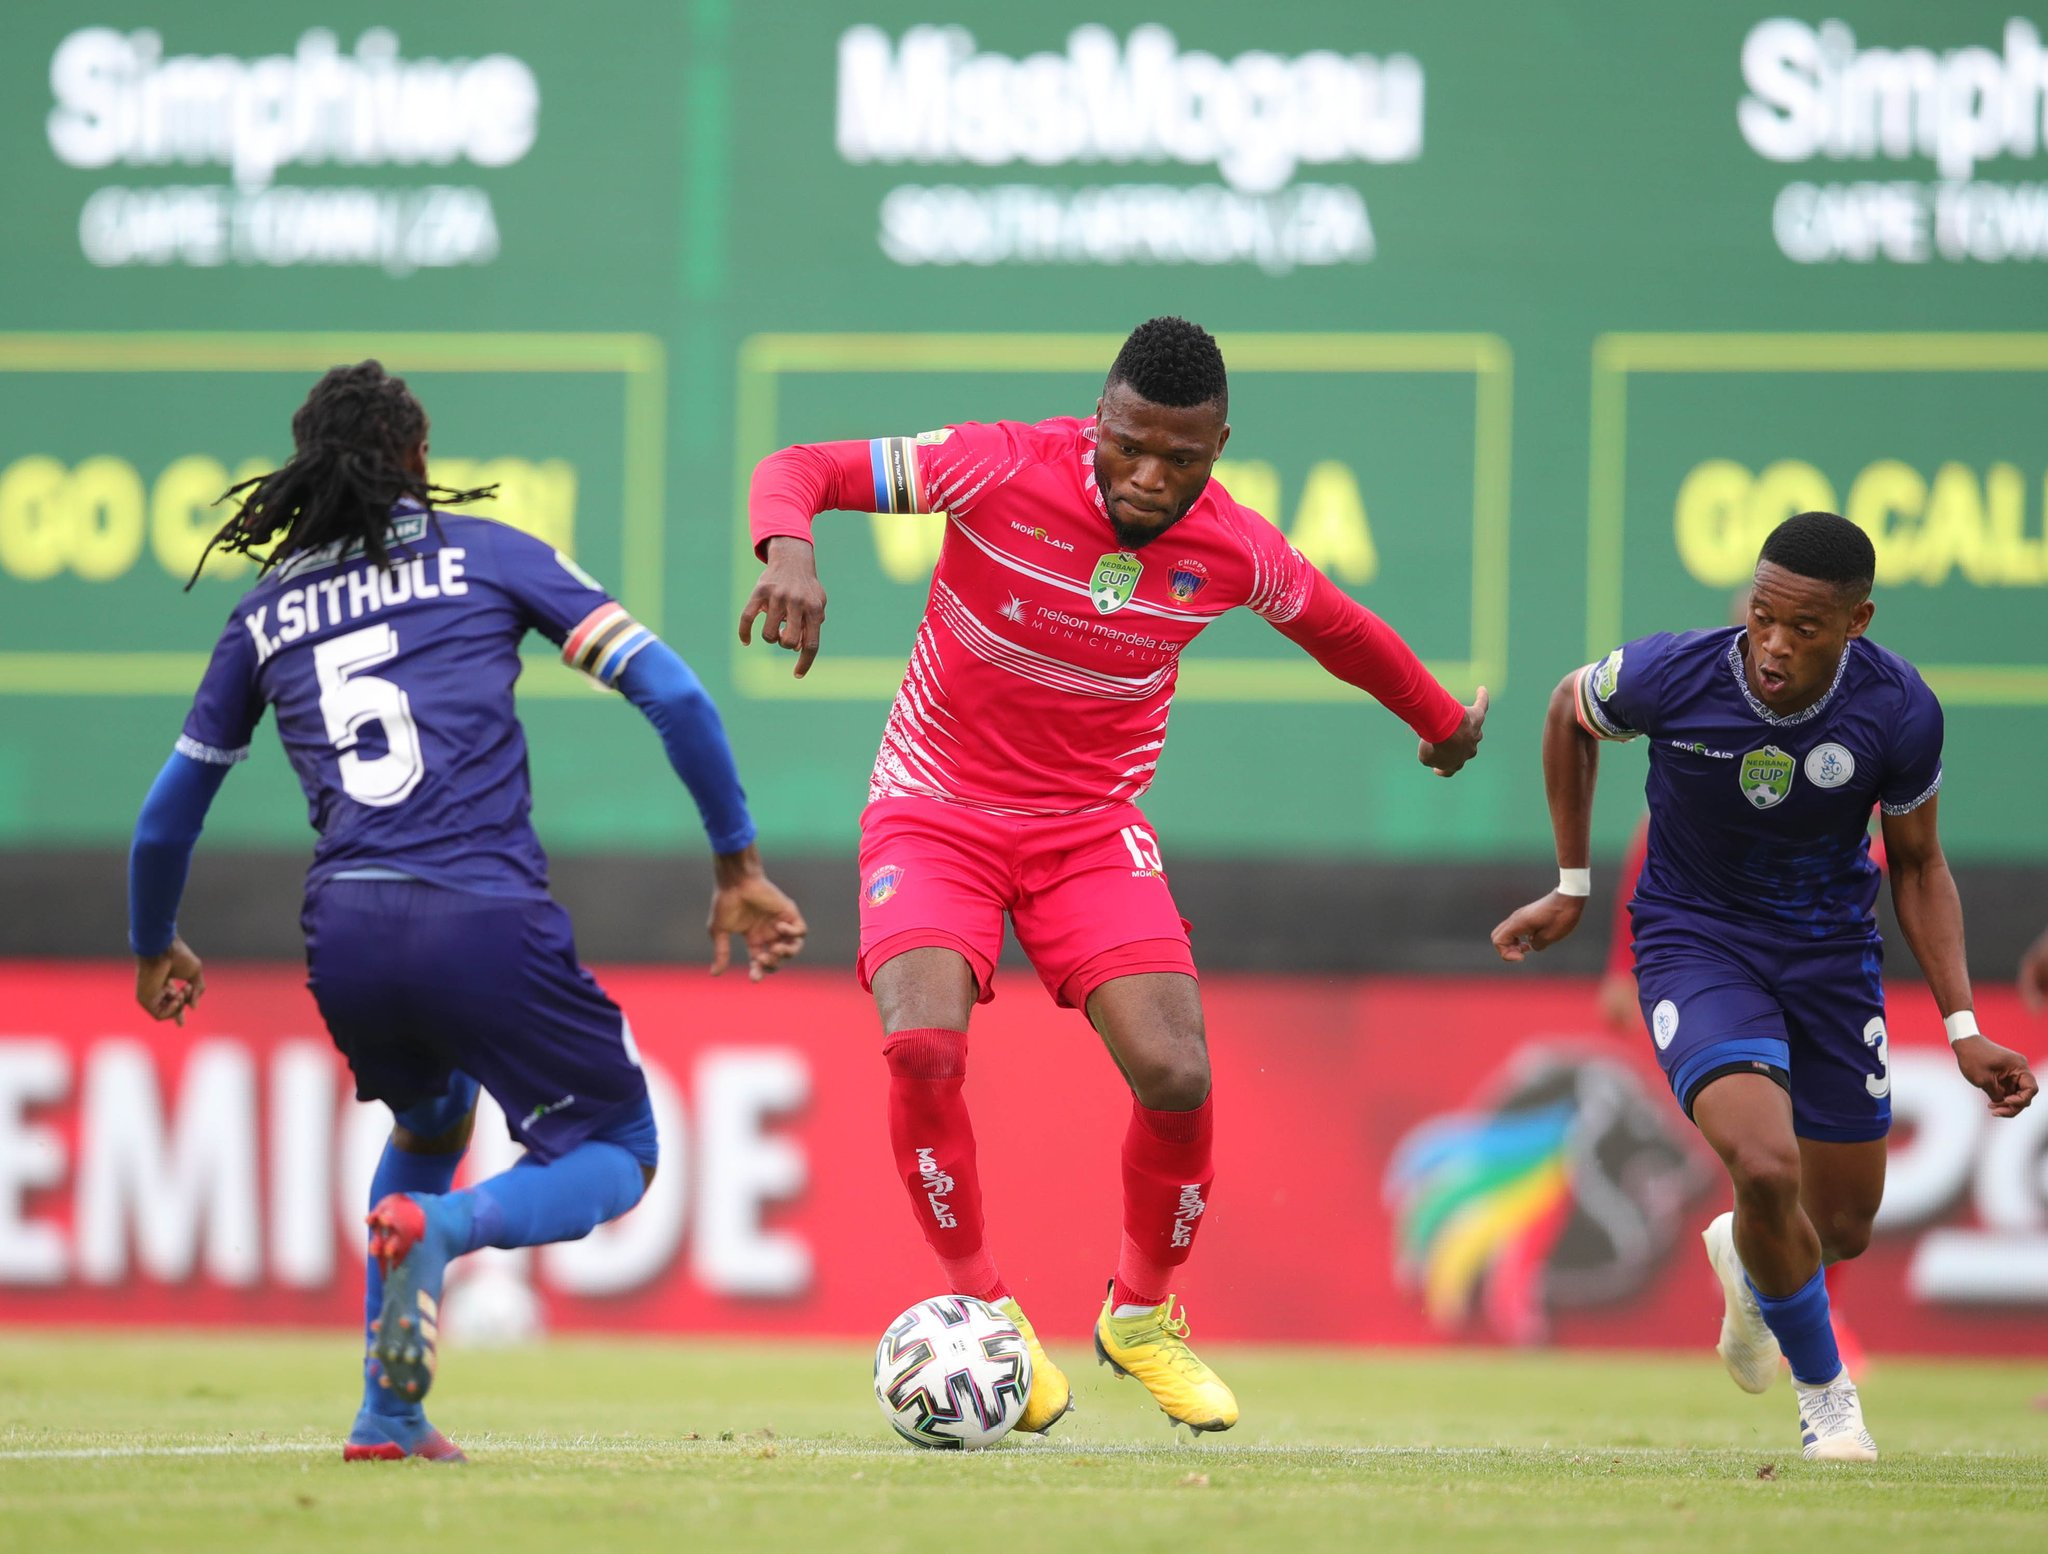 Mthethwa fires Chippa into Nedbank Cup final